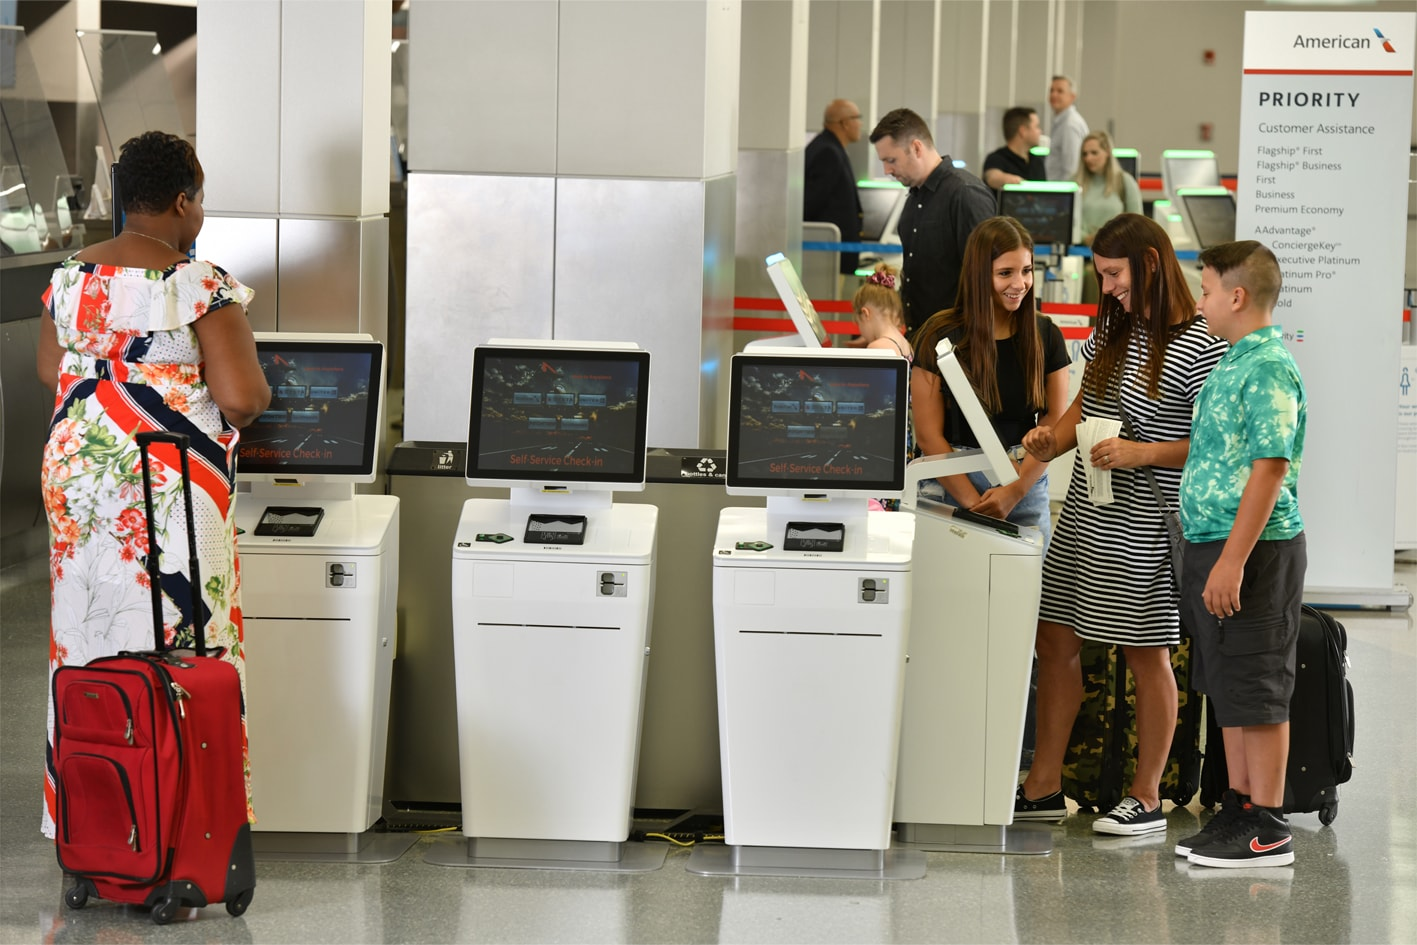 Family using ticket kiosks Des Moines International Airport